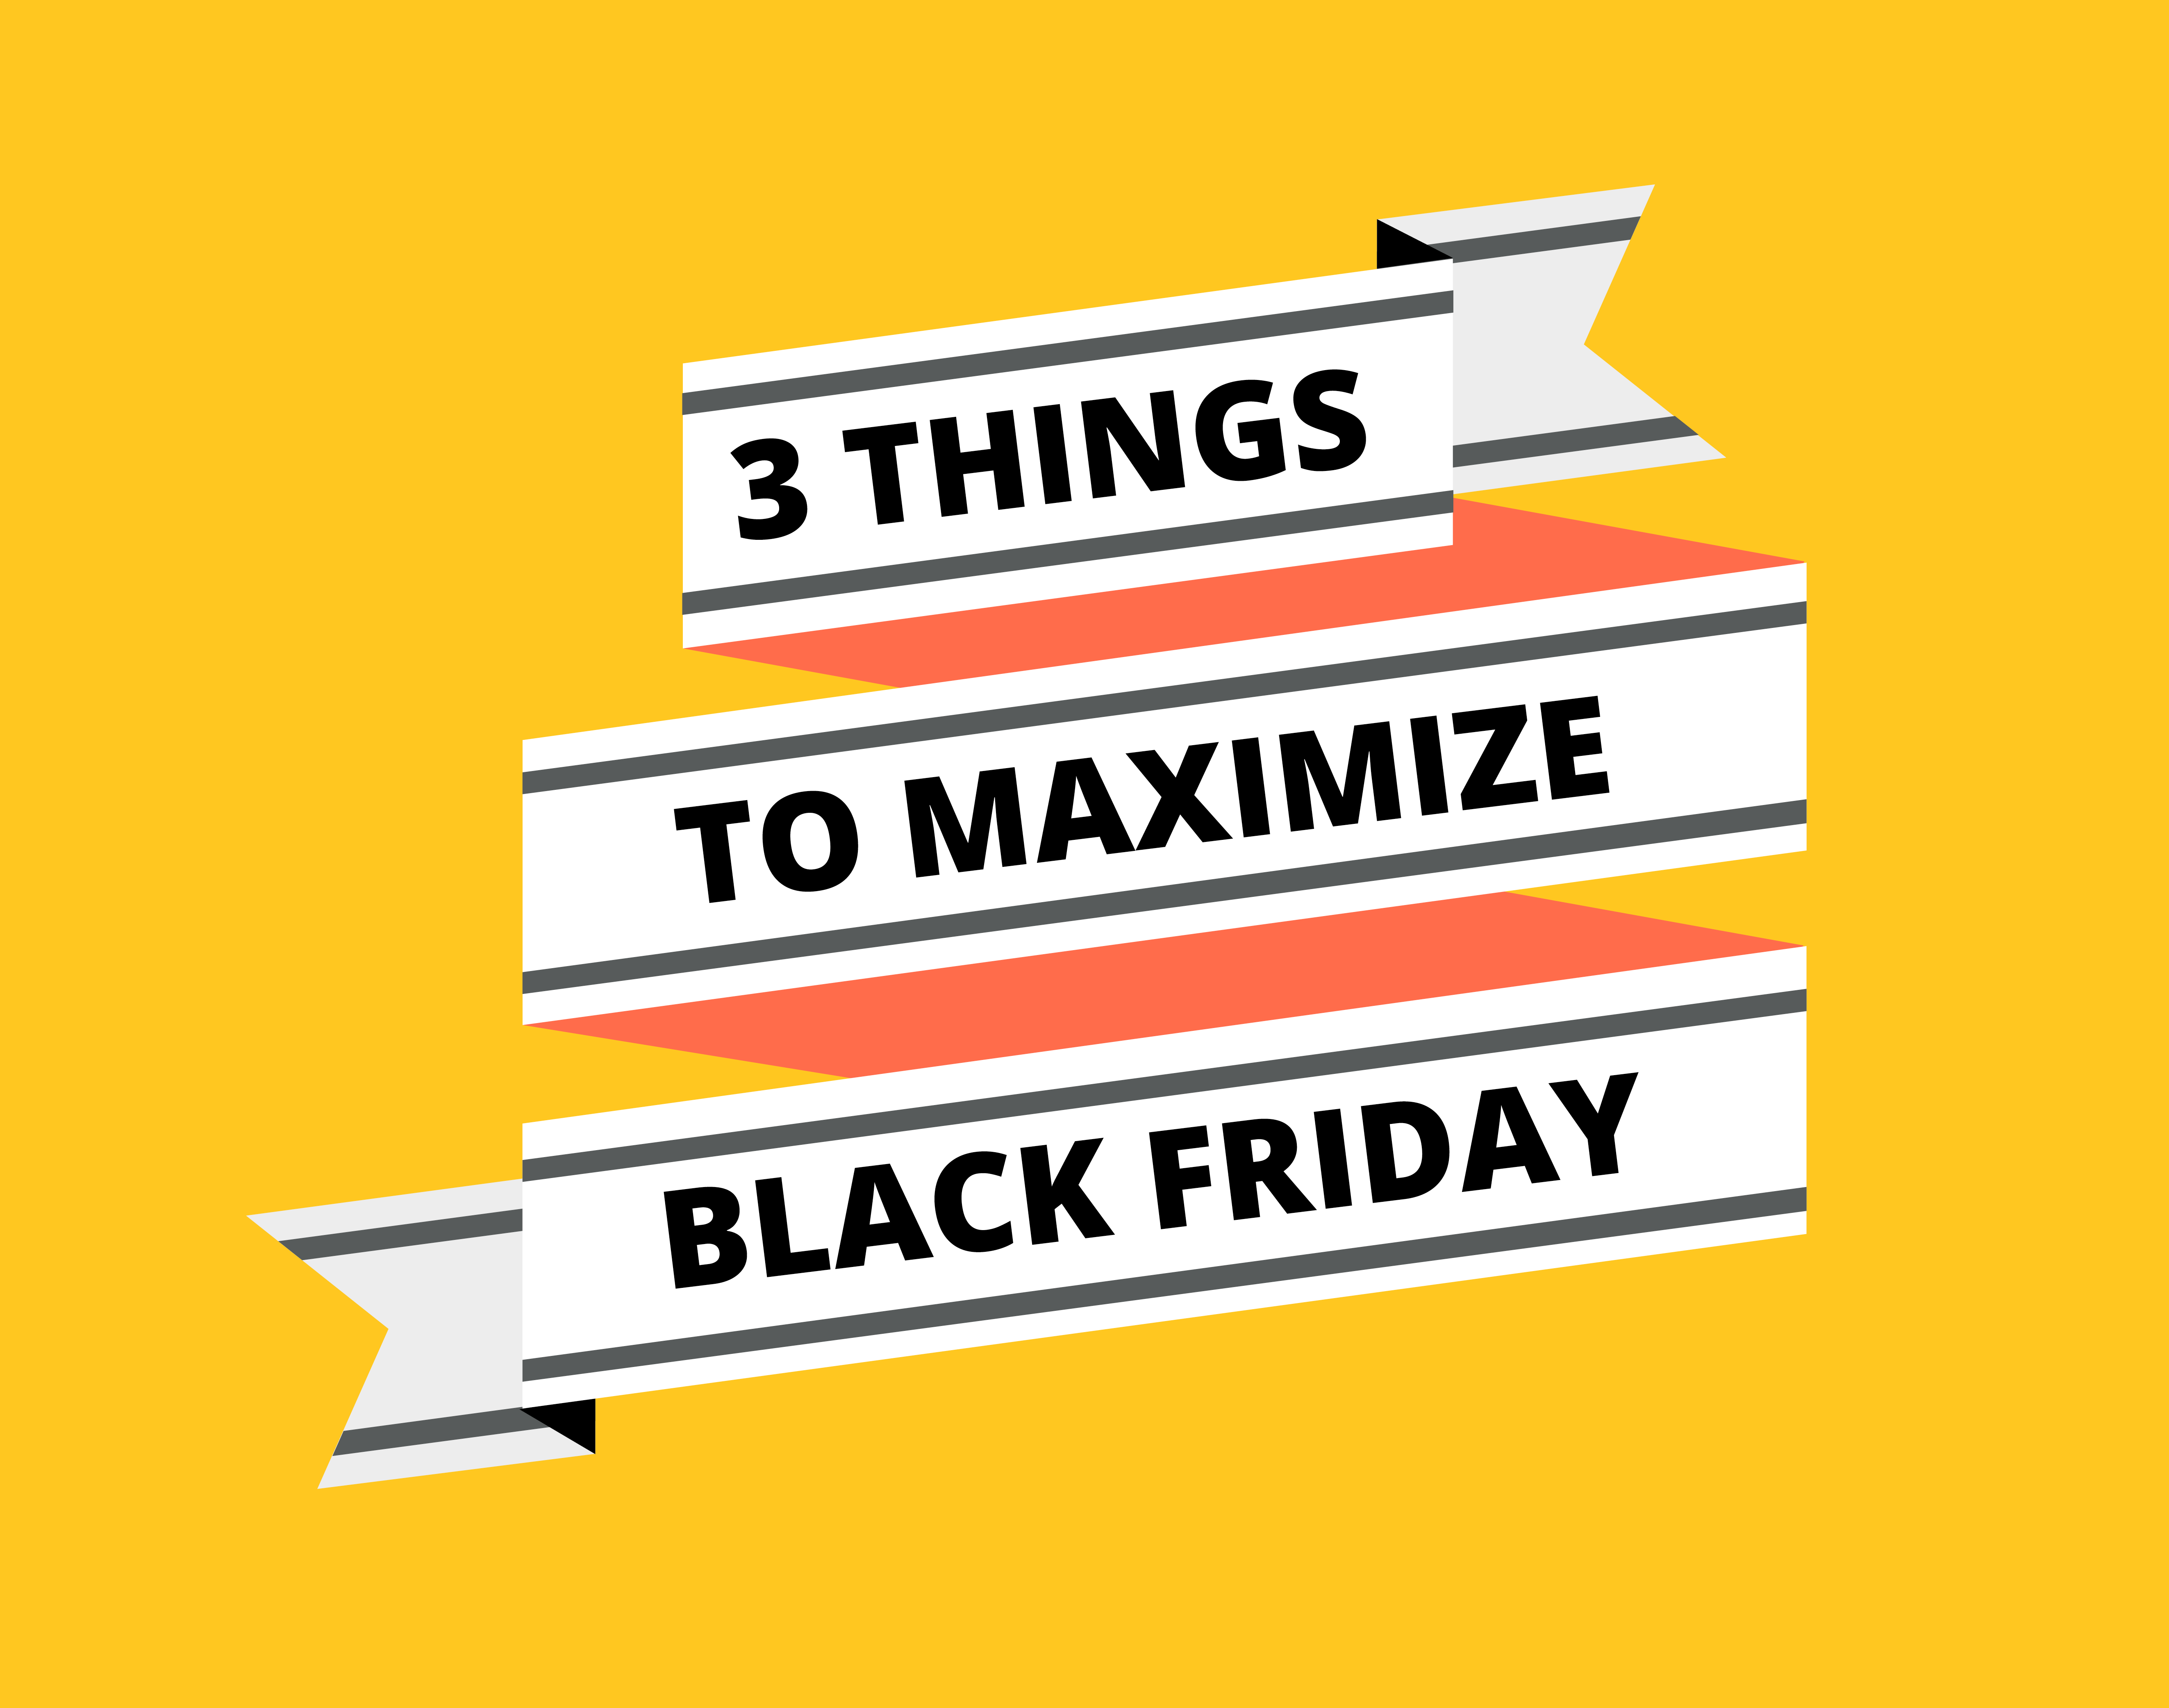 BlackFriday-Maximize